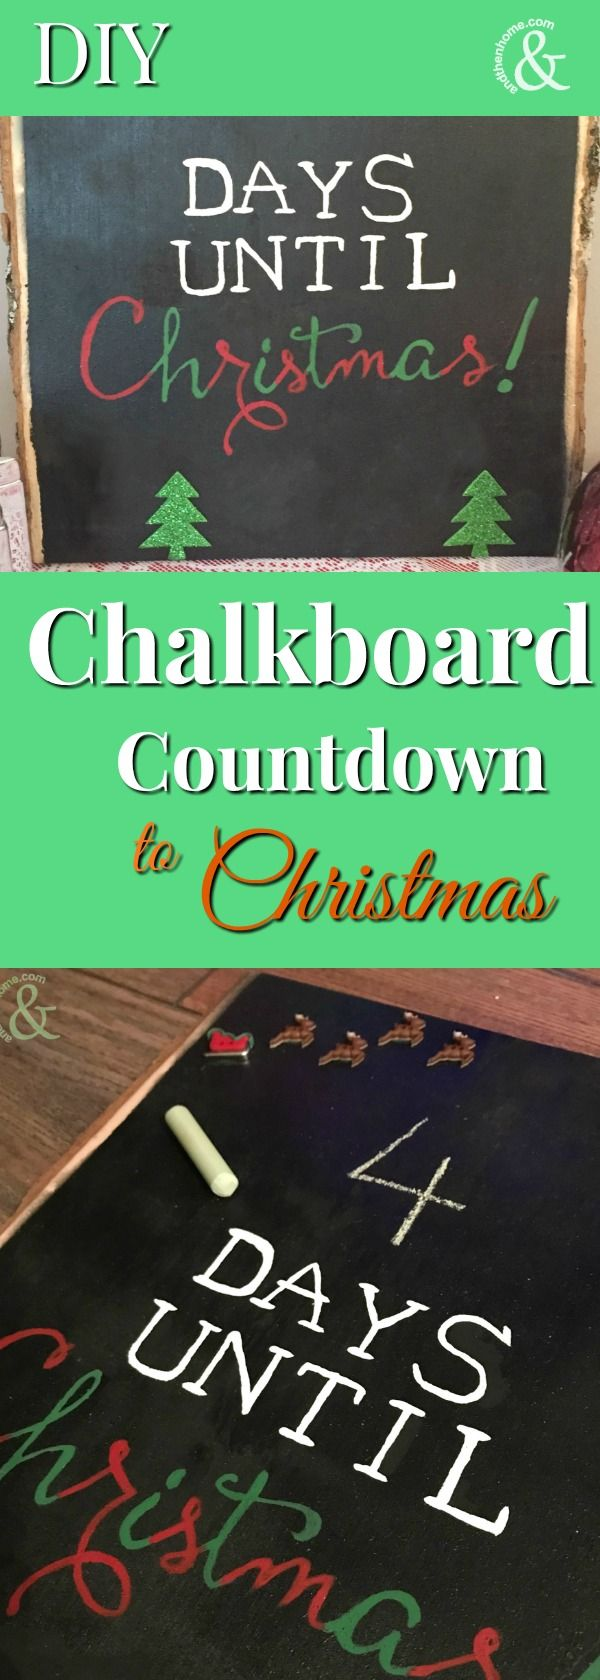 I made this Countdown to Christmas Board because I love Christmas, the countdown is exciting and I need something that tells me how many days of prep and shopping I have left!  You can easily do the same!  See the easy steps on our website http://www.andthenhome.com/diy-countdown-christmas-chalkboard-paint/ #chalkboard #chalkpaint #christmascountdown #DIY #diychristmas #chalk #hohoho #christmasdecor #christmascrafts #andthenhome